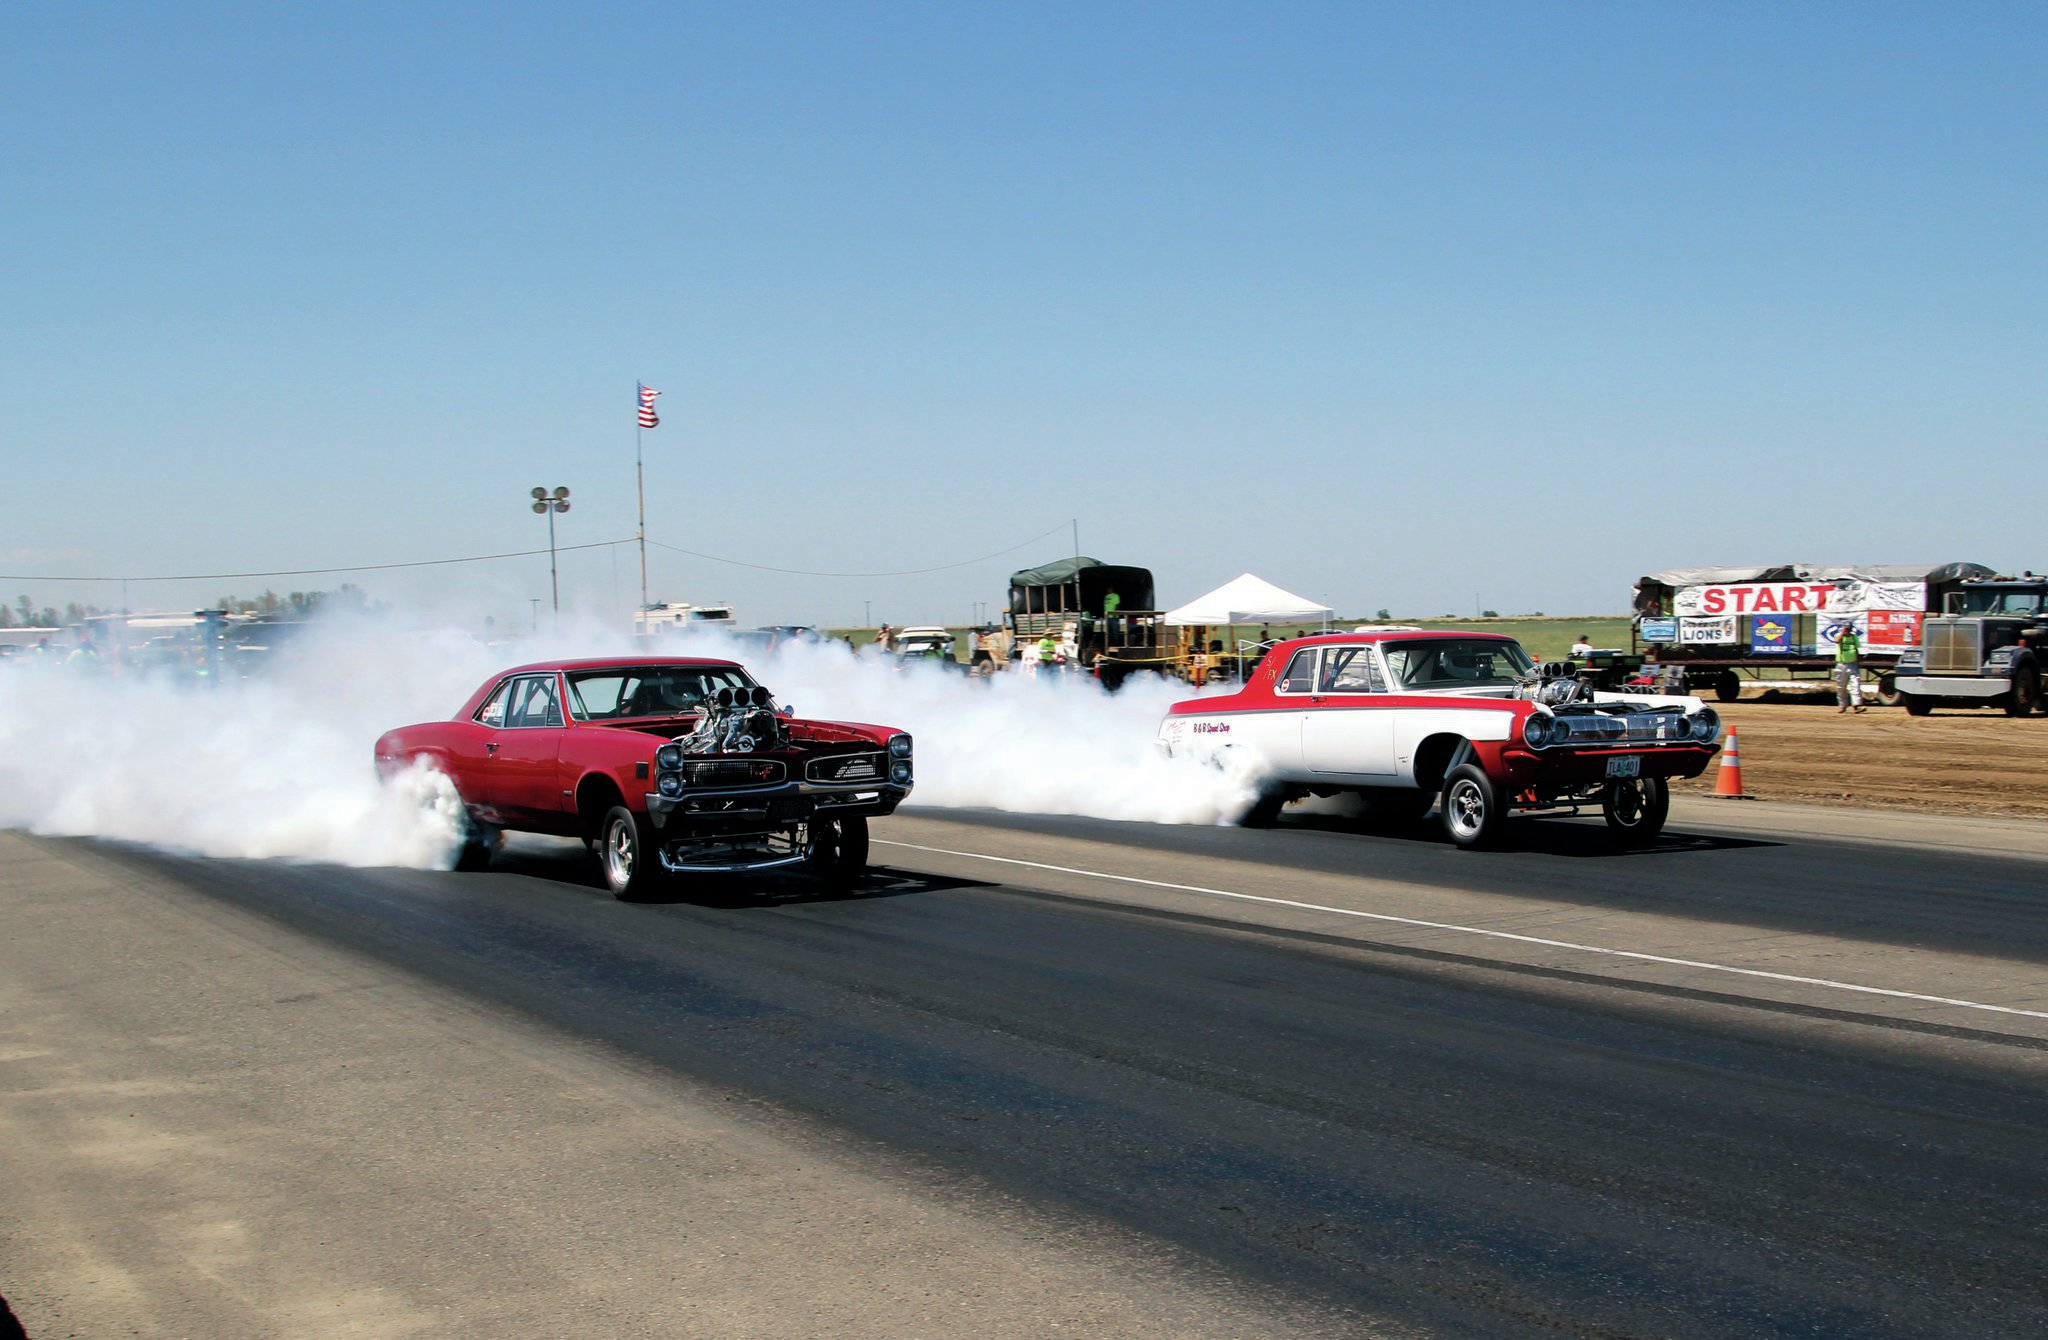 Adam and Justin Brenneman, who own B&B Speed Shop in Albany, Oregon, brought their 170-mph-plus match race monsters to race each other in a best-of-three format. Adam's '66 Pontiac LeMans has more than 1,000 hp, as does Justin's '64 S/FX Dodge. Both cars are built in the style of the early '60s Funny Cars; however, they are both fully certified to compete at today's racetracks.